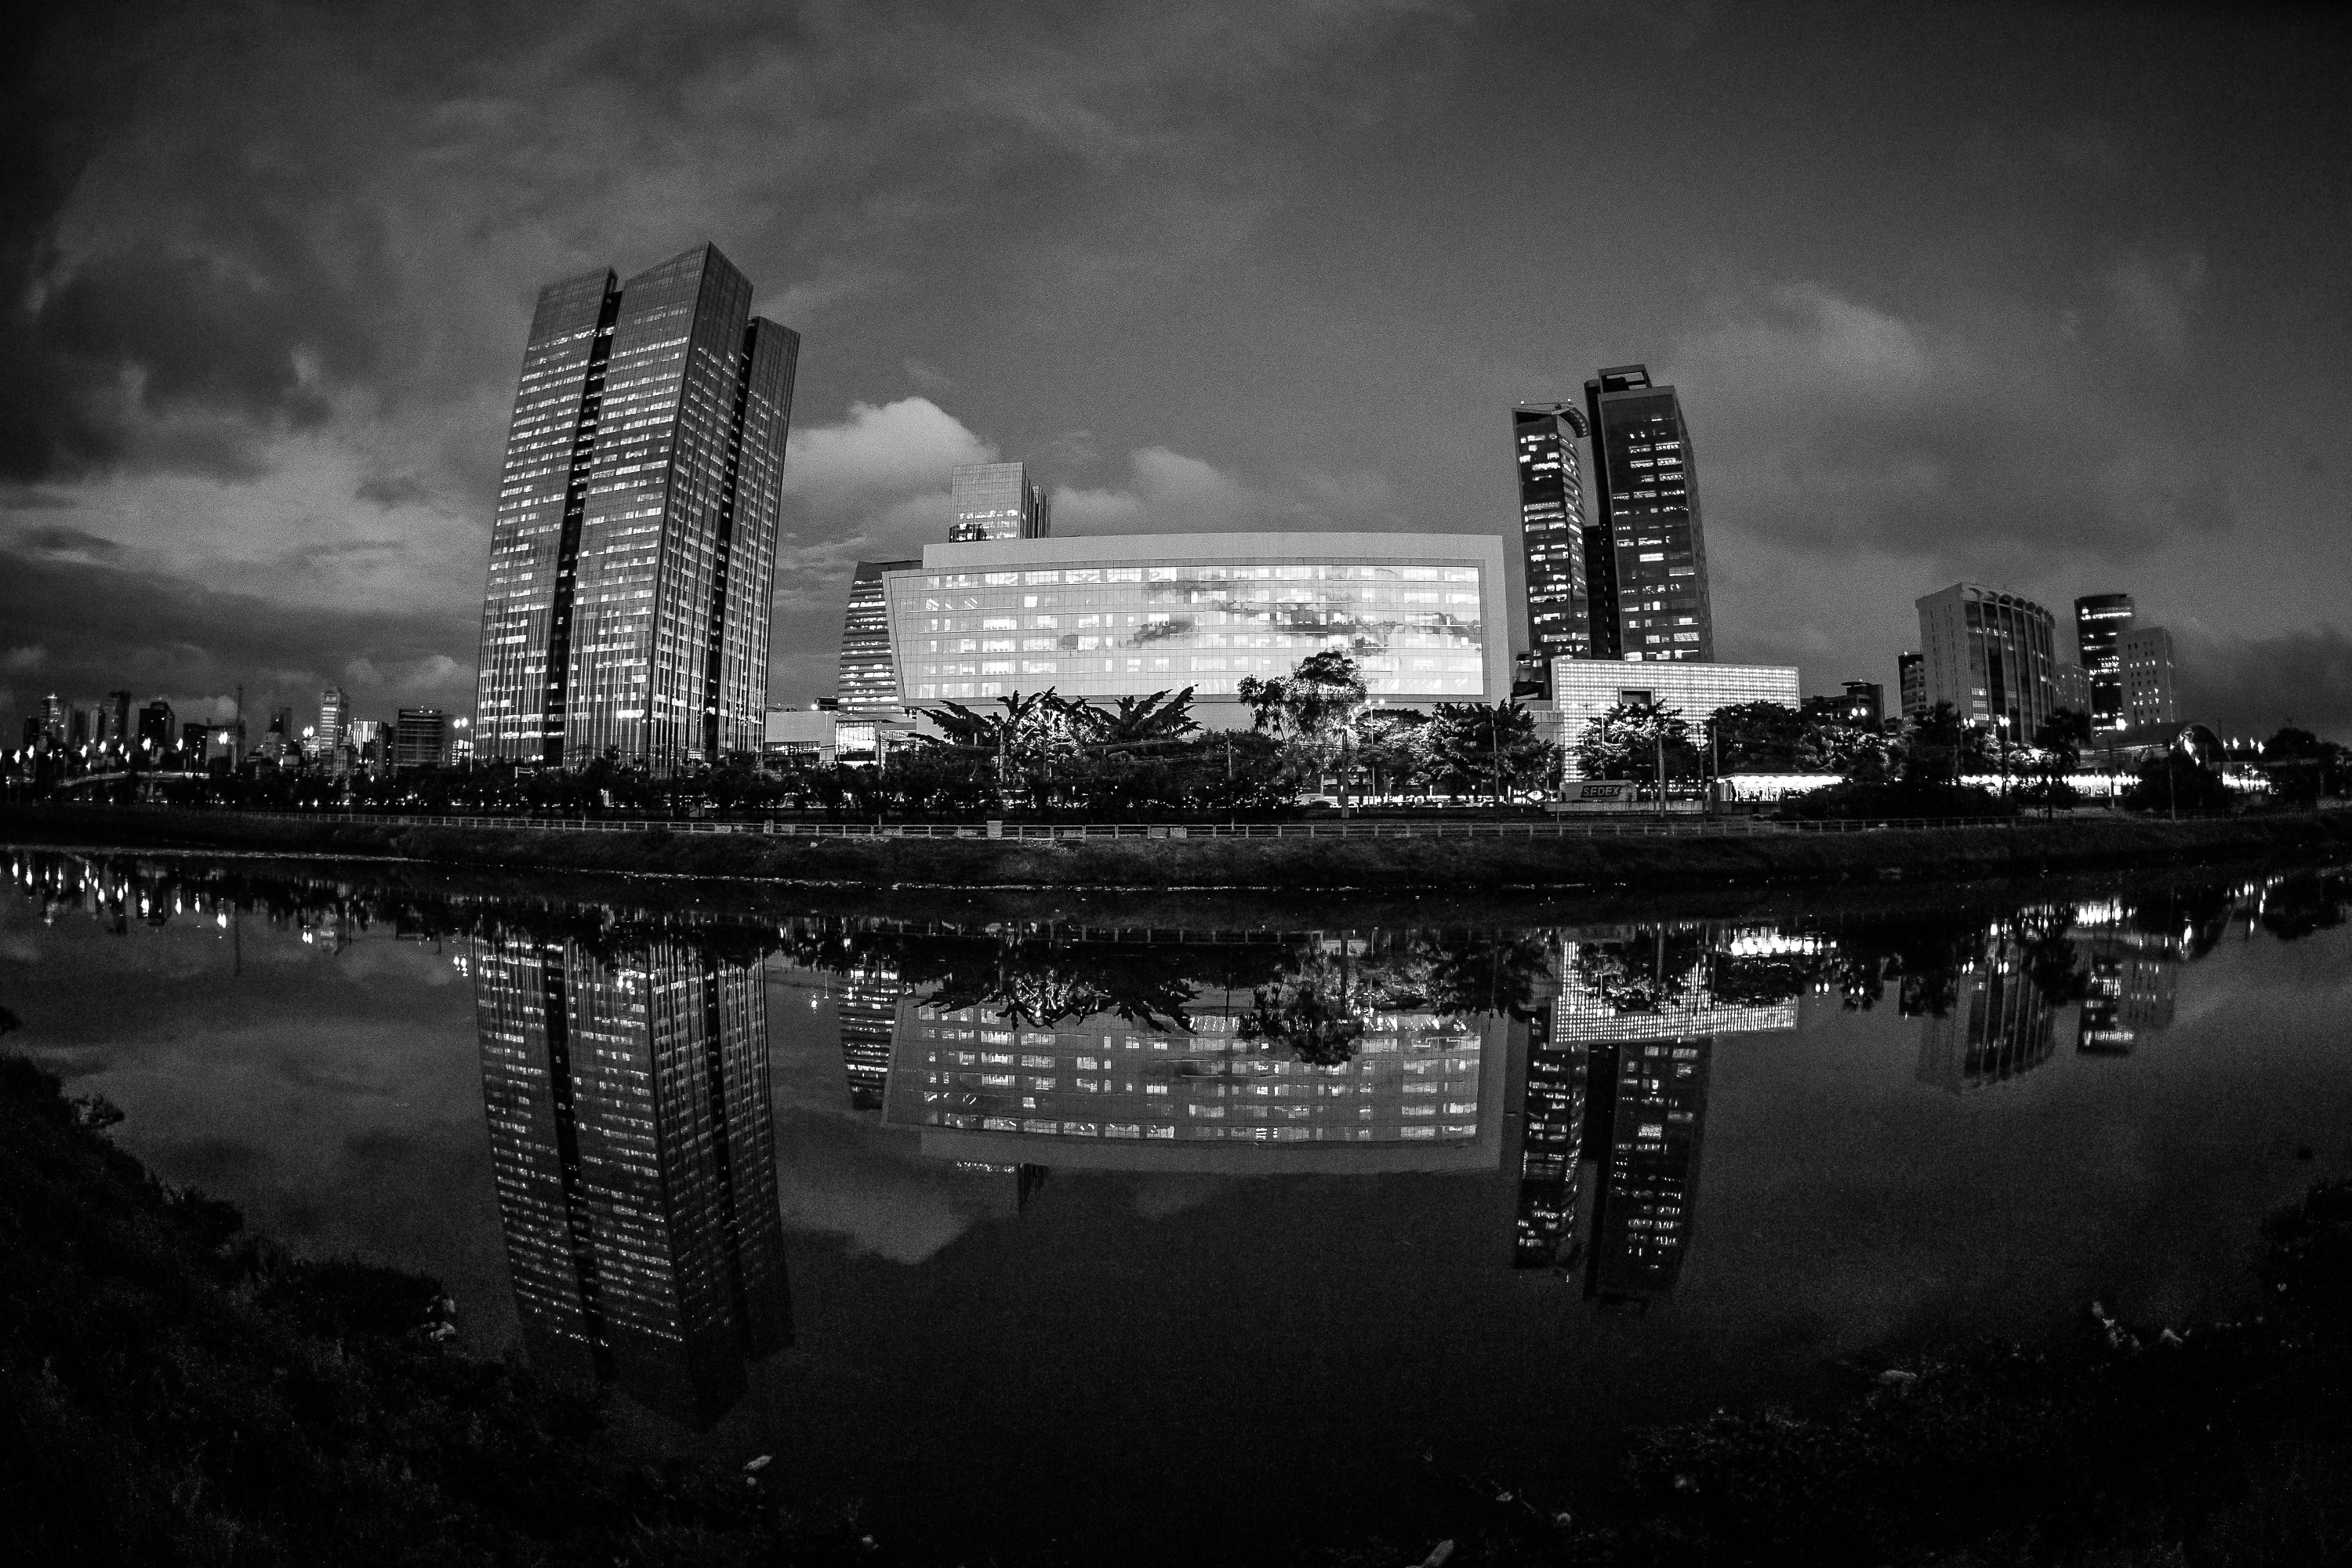 grayscale photo of buildings near body of water